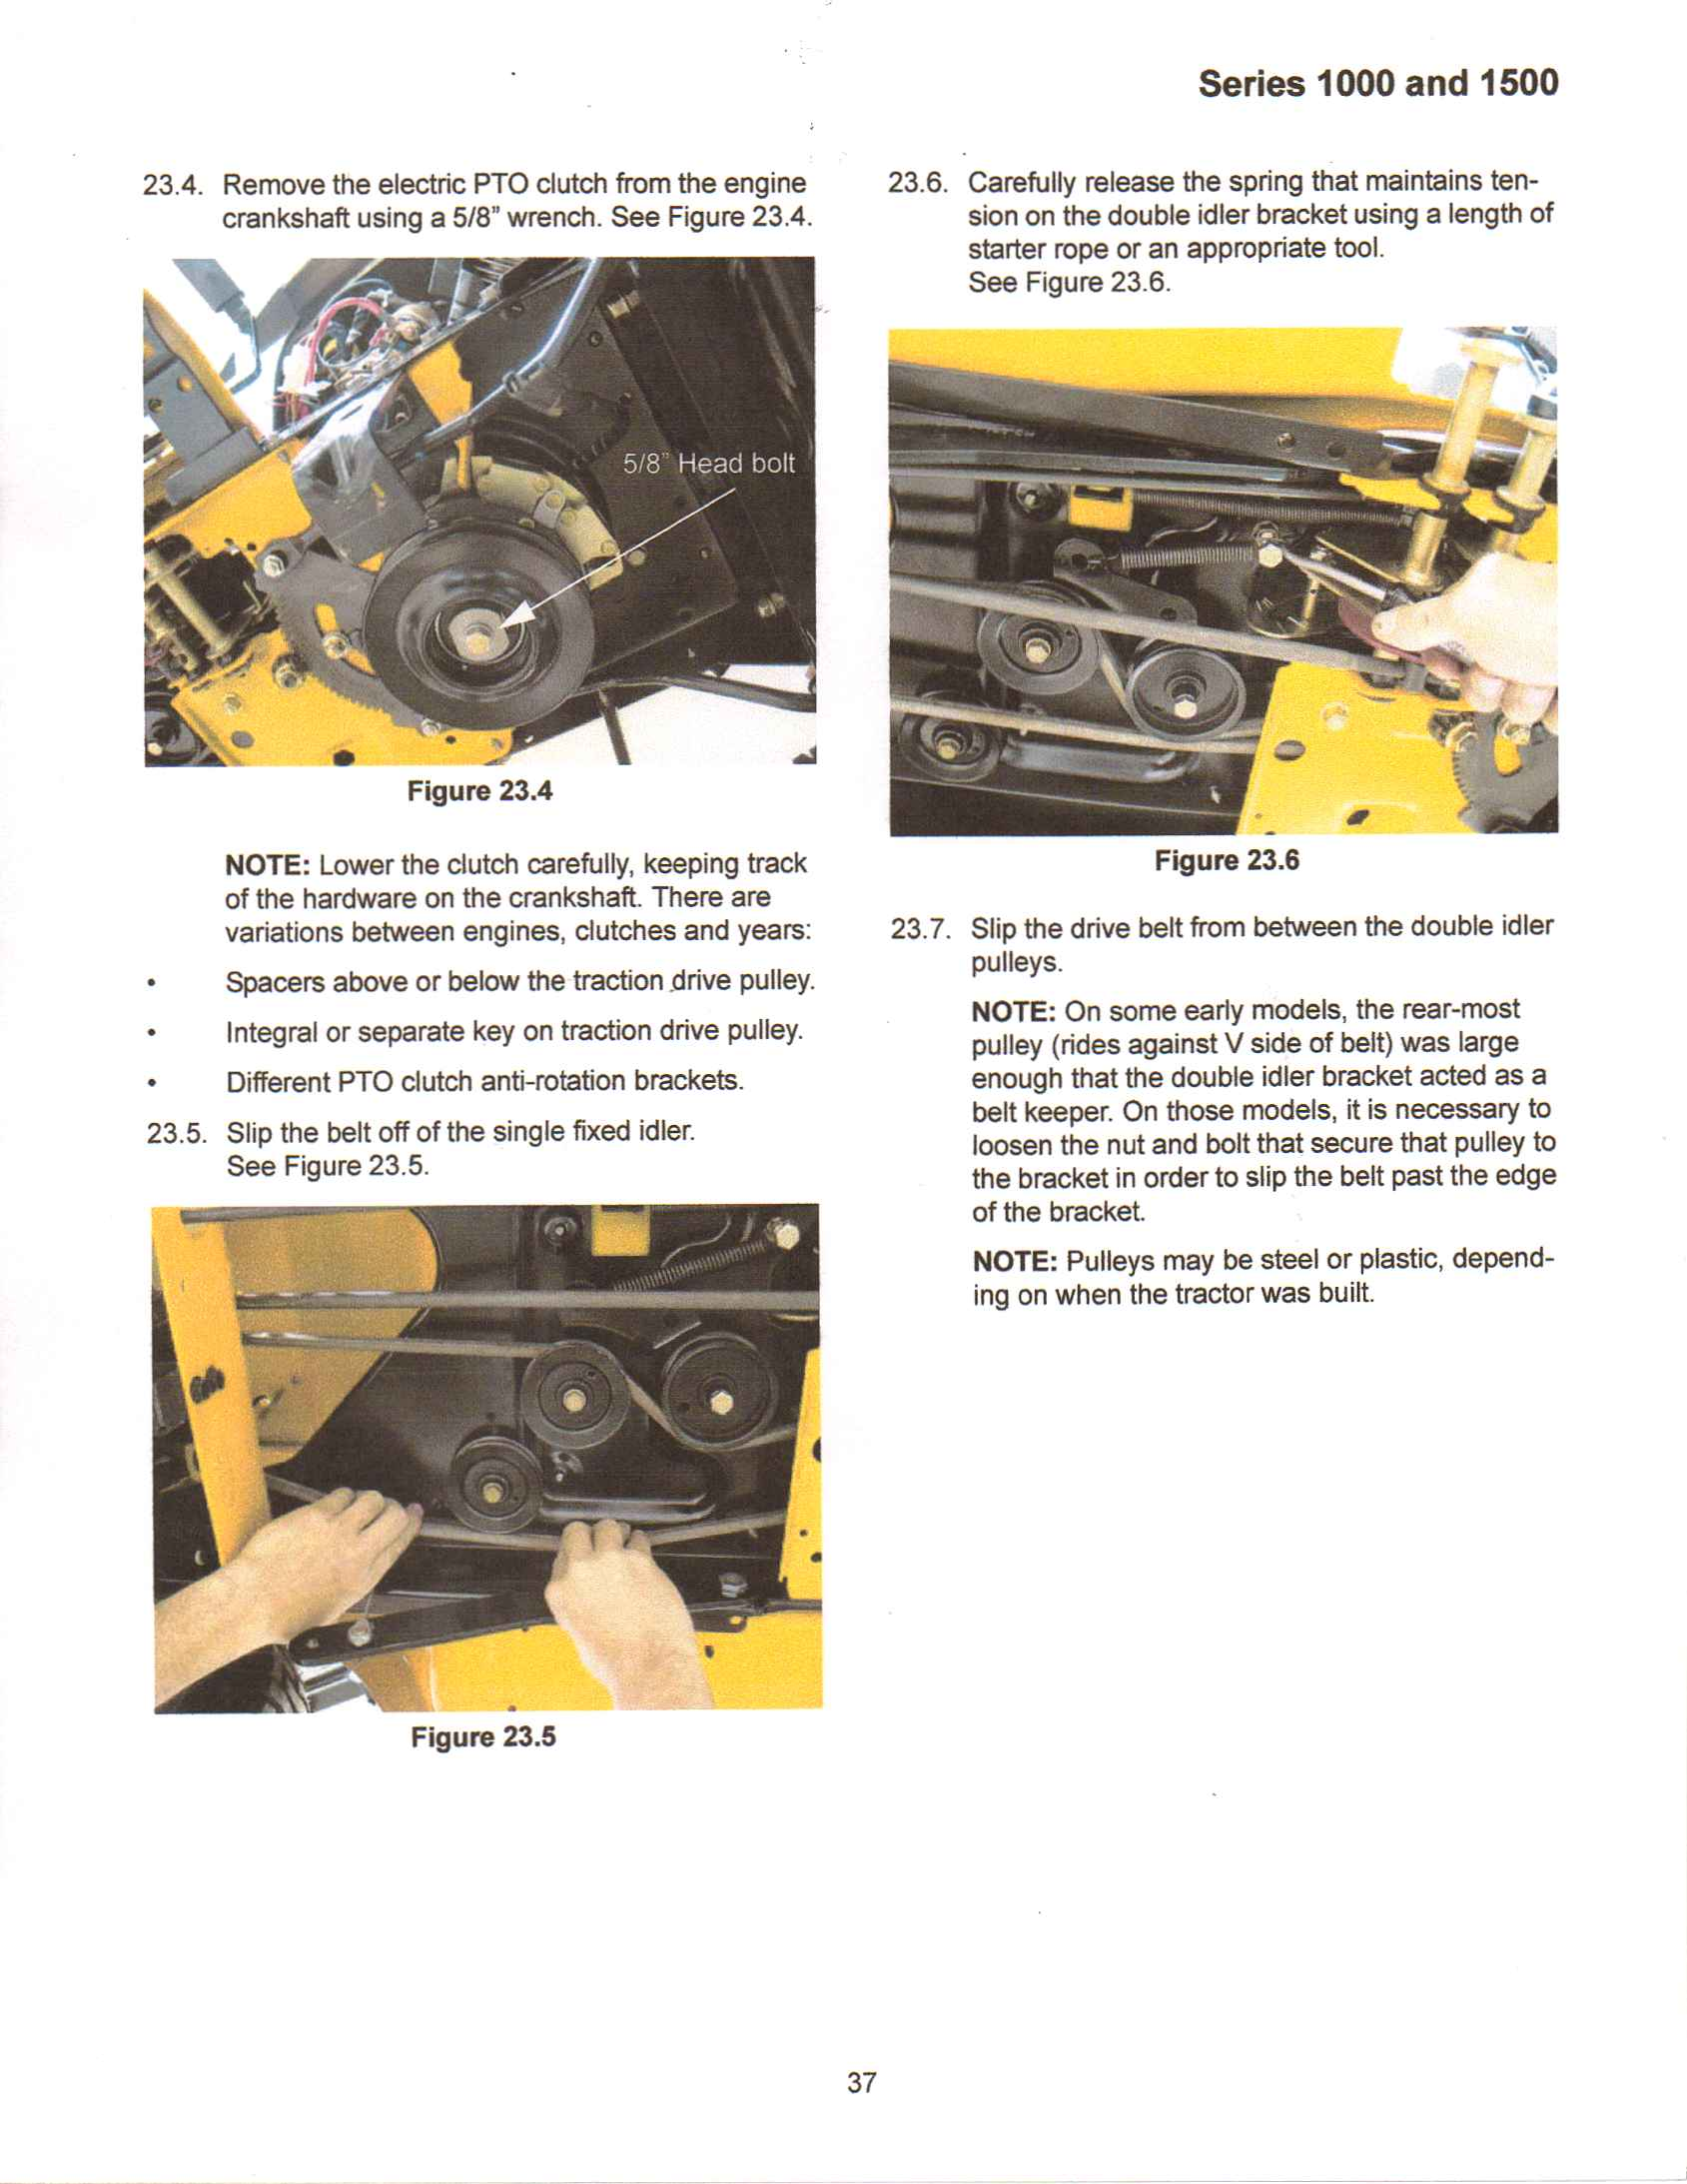 Cub Cadet Lt1042 Pto Wiring Diagram Reinvent Your 1440 Lt1050 Clutch Home Design Ideas Rh Epigenetics And Infections2017 Org Electrical 2155